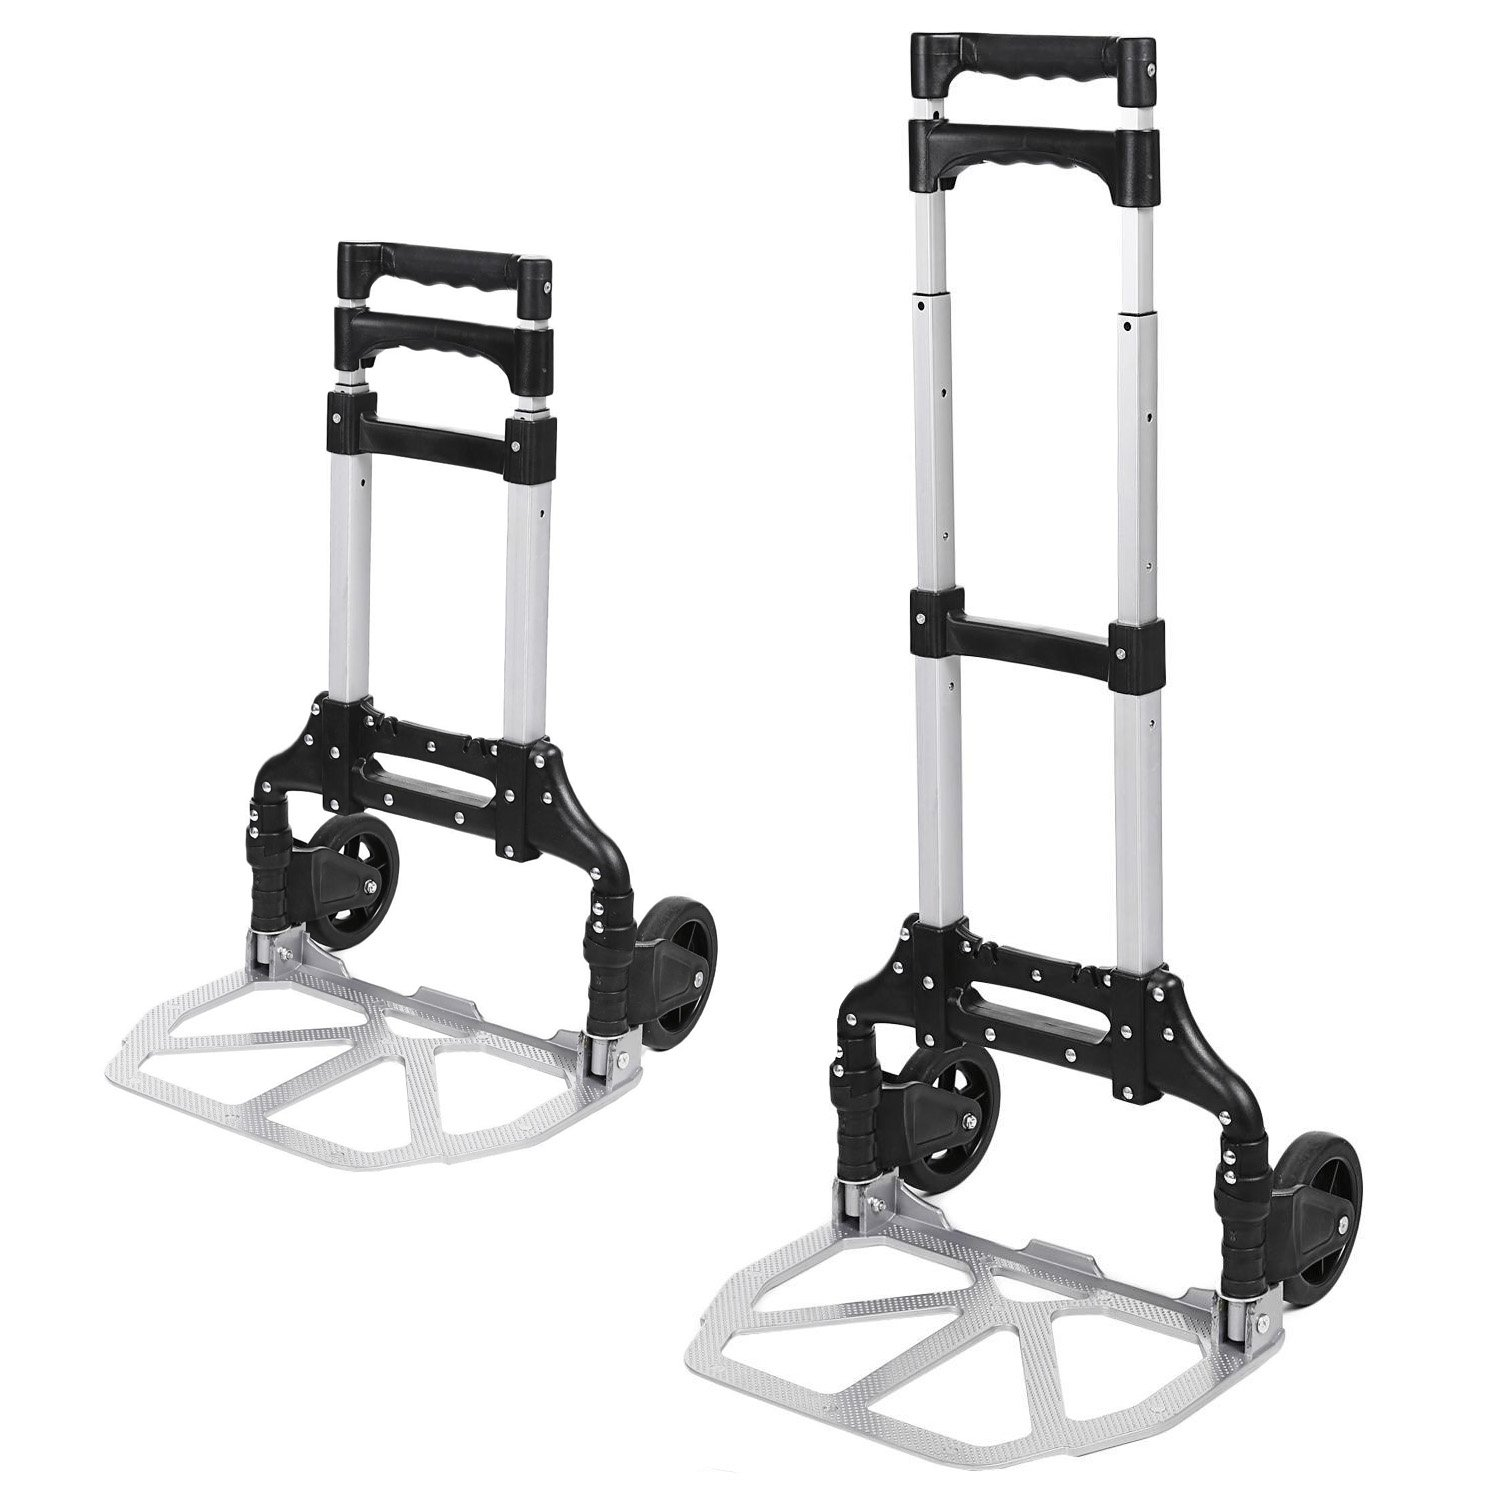 (US Stock) Keland Foldable Lightweight Hand Truck, Portable Aluminum Small Hand Trucks,150lbs Capacity Mini Hand Truck with Arm Handle for Industrial/Travel/Shopping by Keland (Image #5)